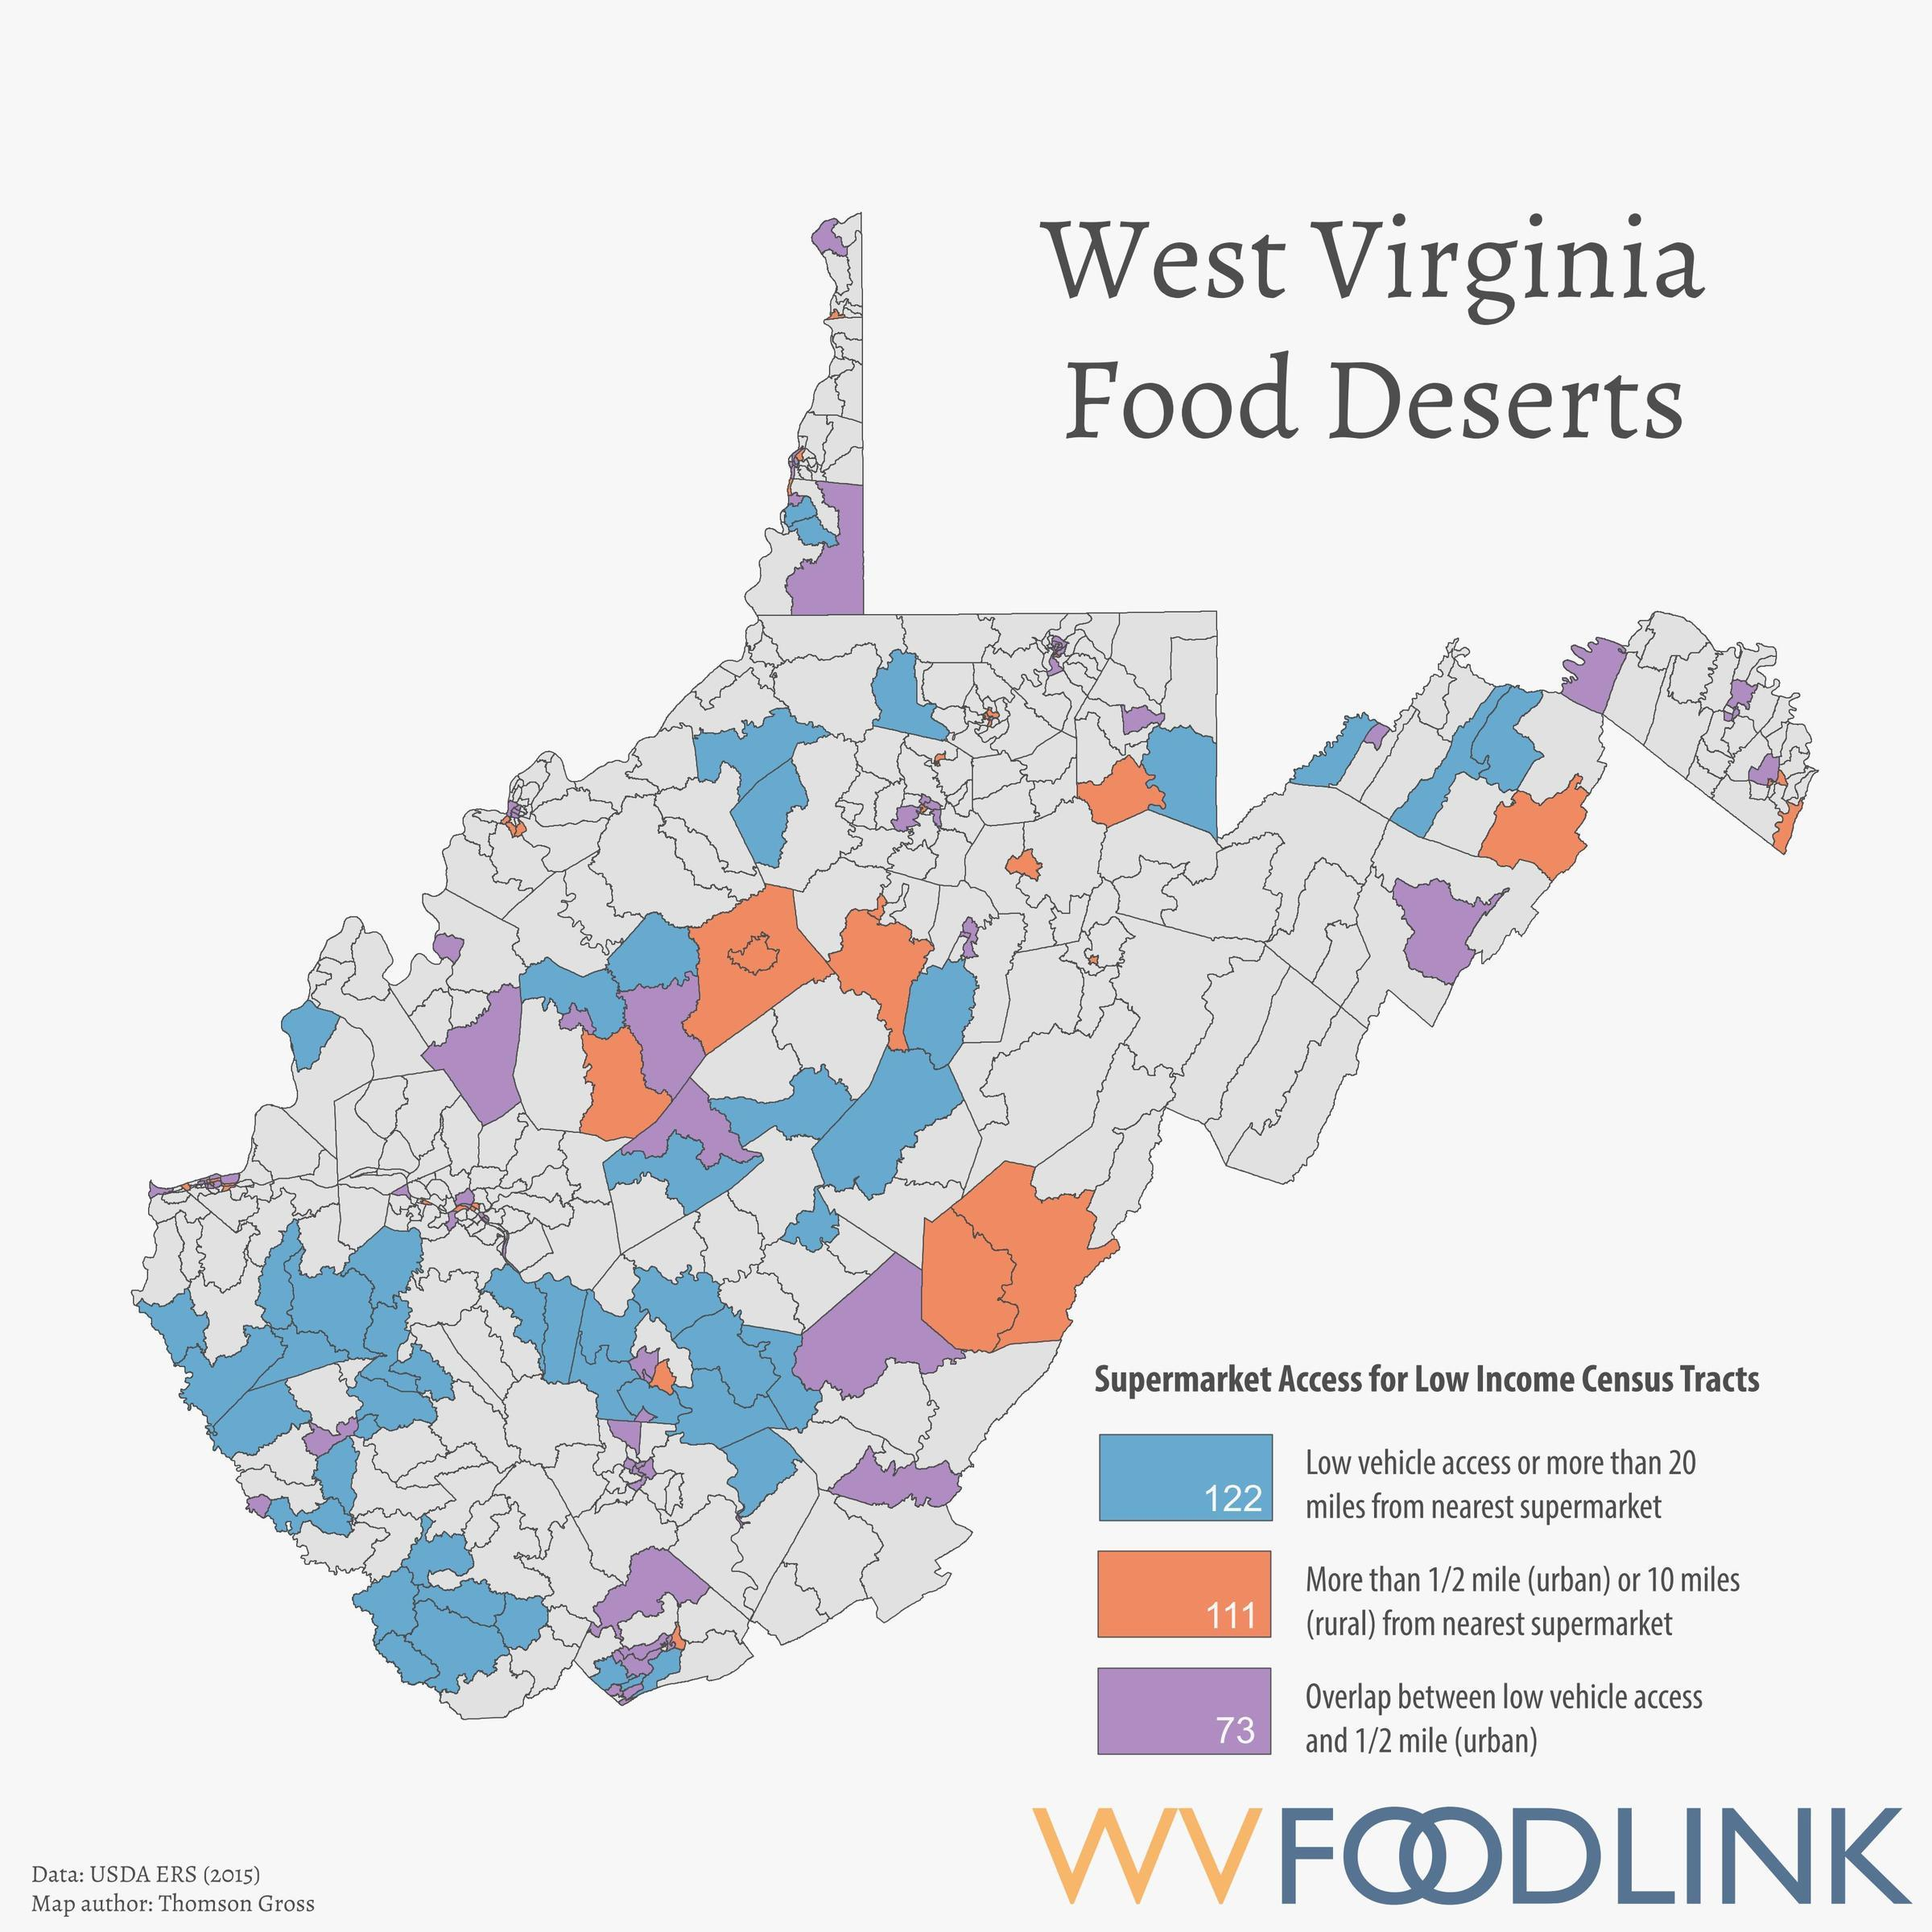 bradley wilson and his team are posting information and a lot of maps likethis food desert map of west virginia they made for inside appalachia. wv foodlink researchers work to link people to food  west